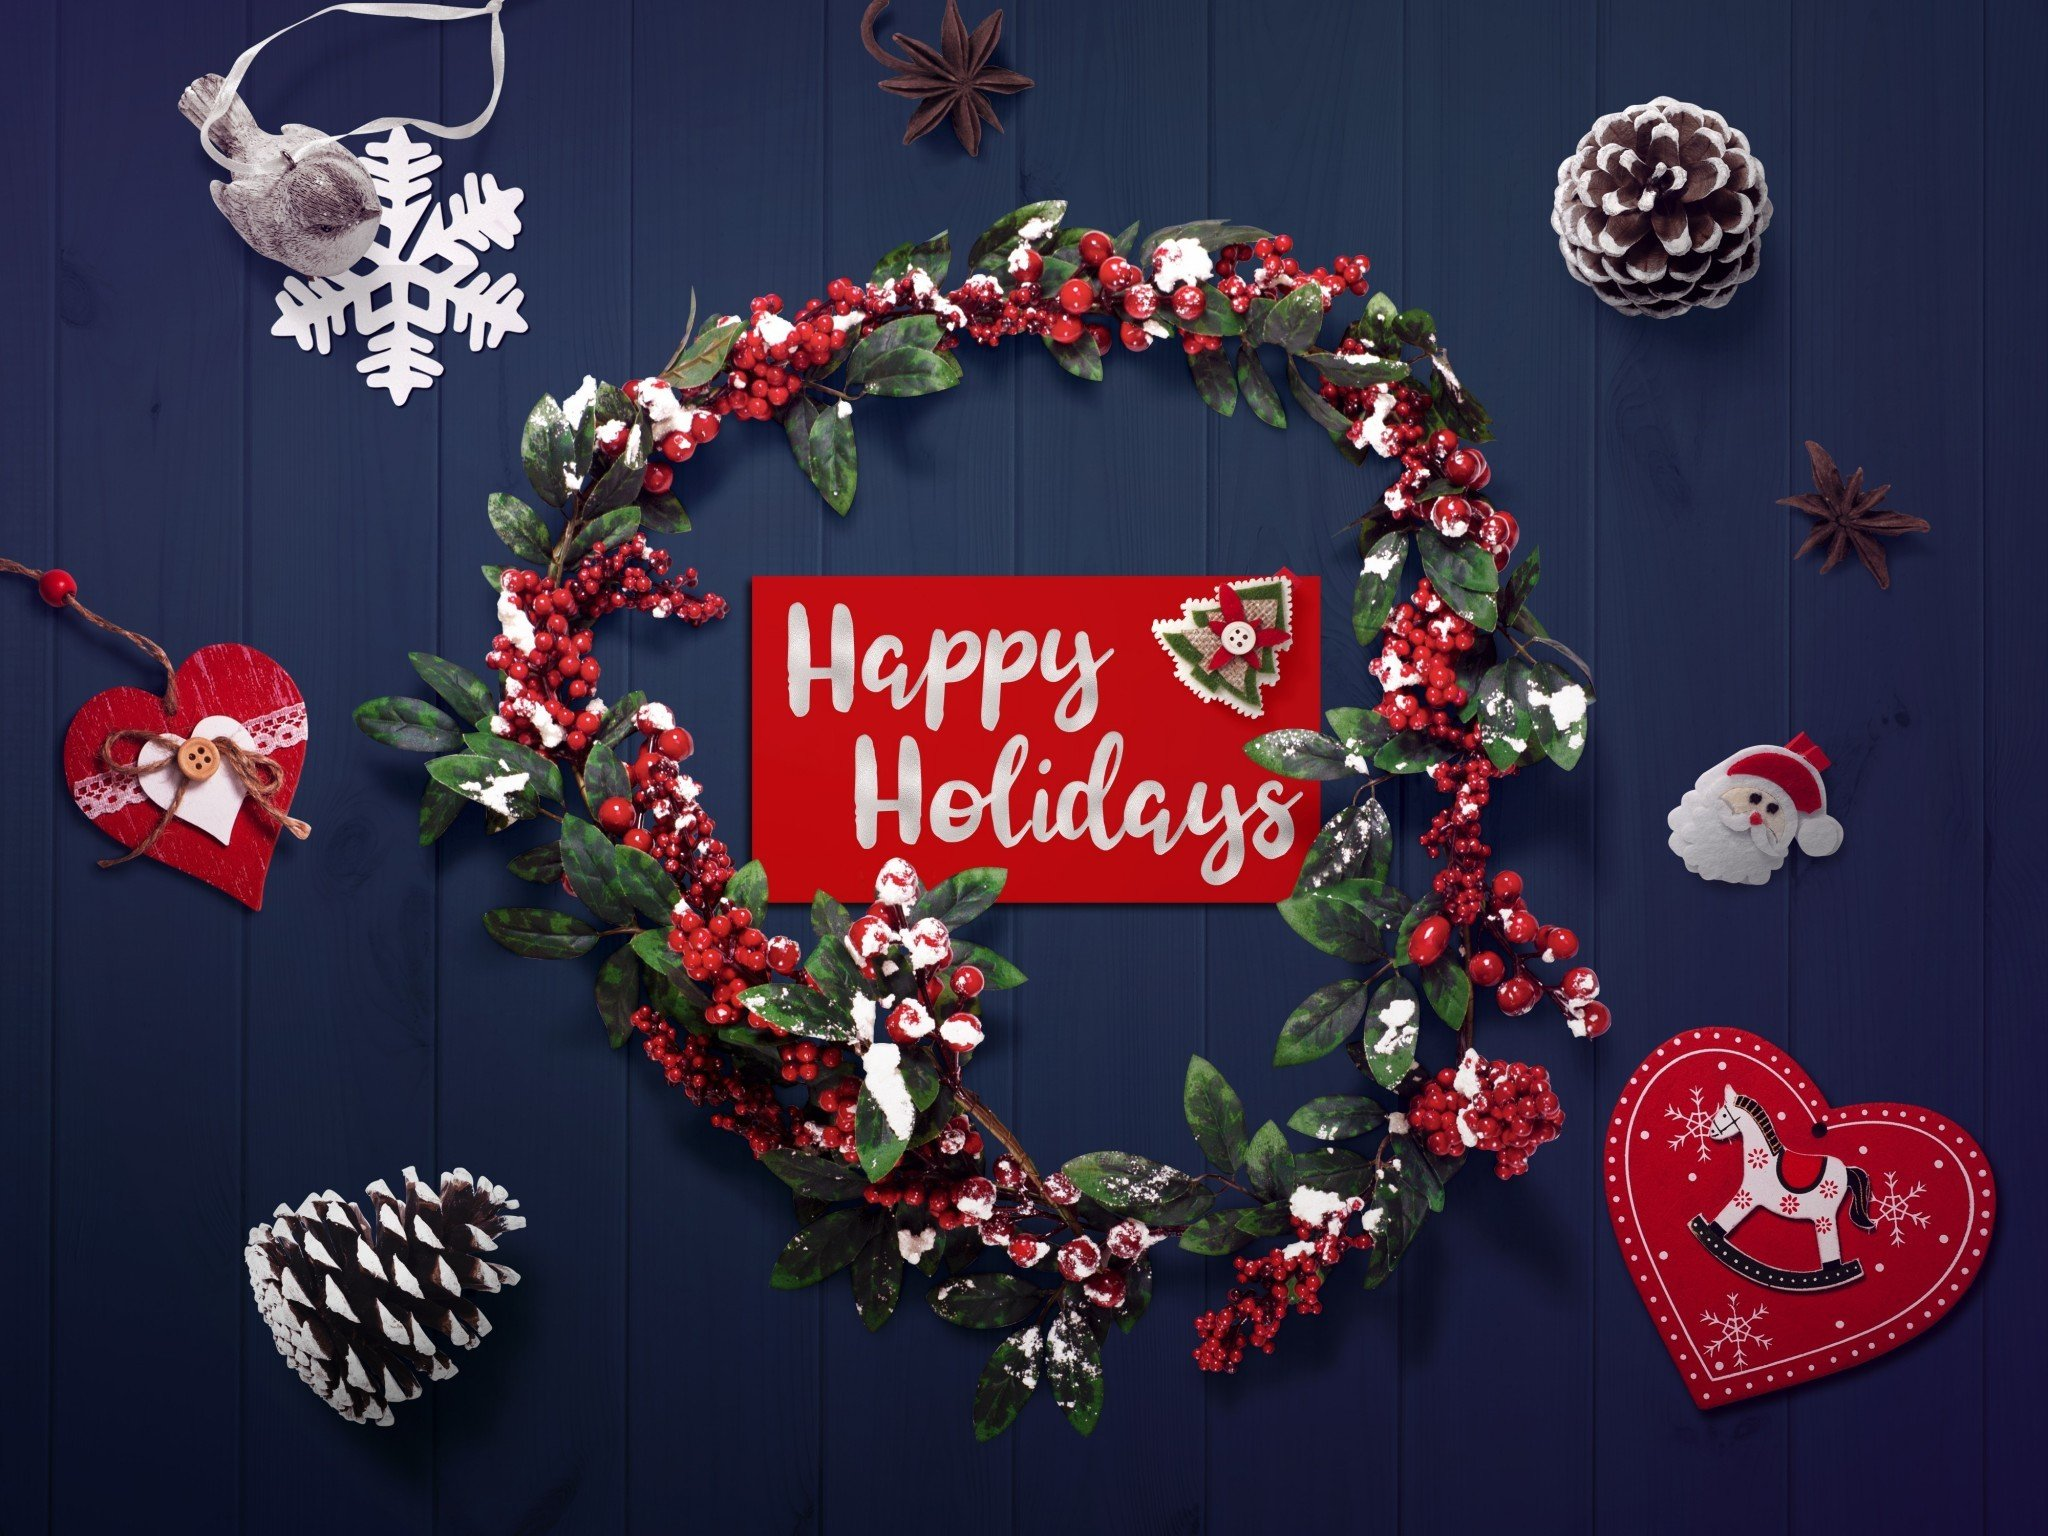 Download 2048x1536 Merry Christmas 2020 Decorations Happy 2048x1536